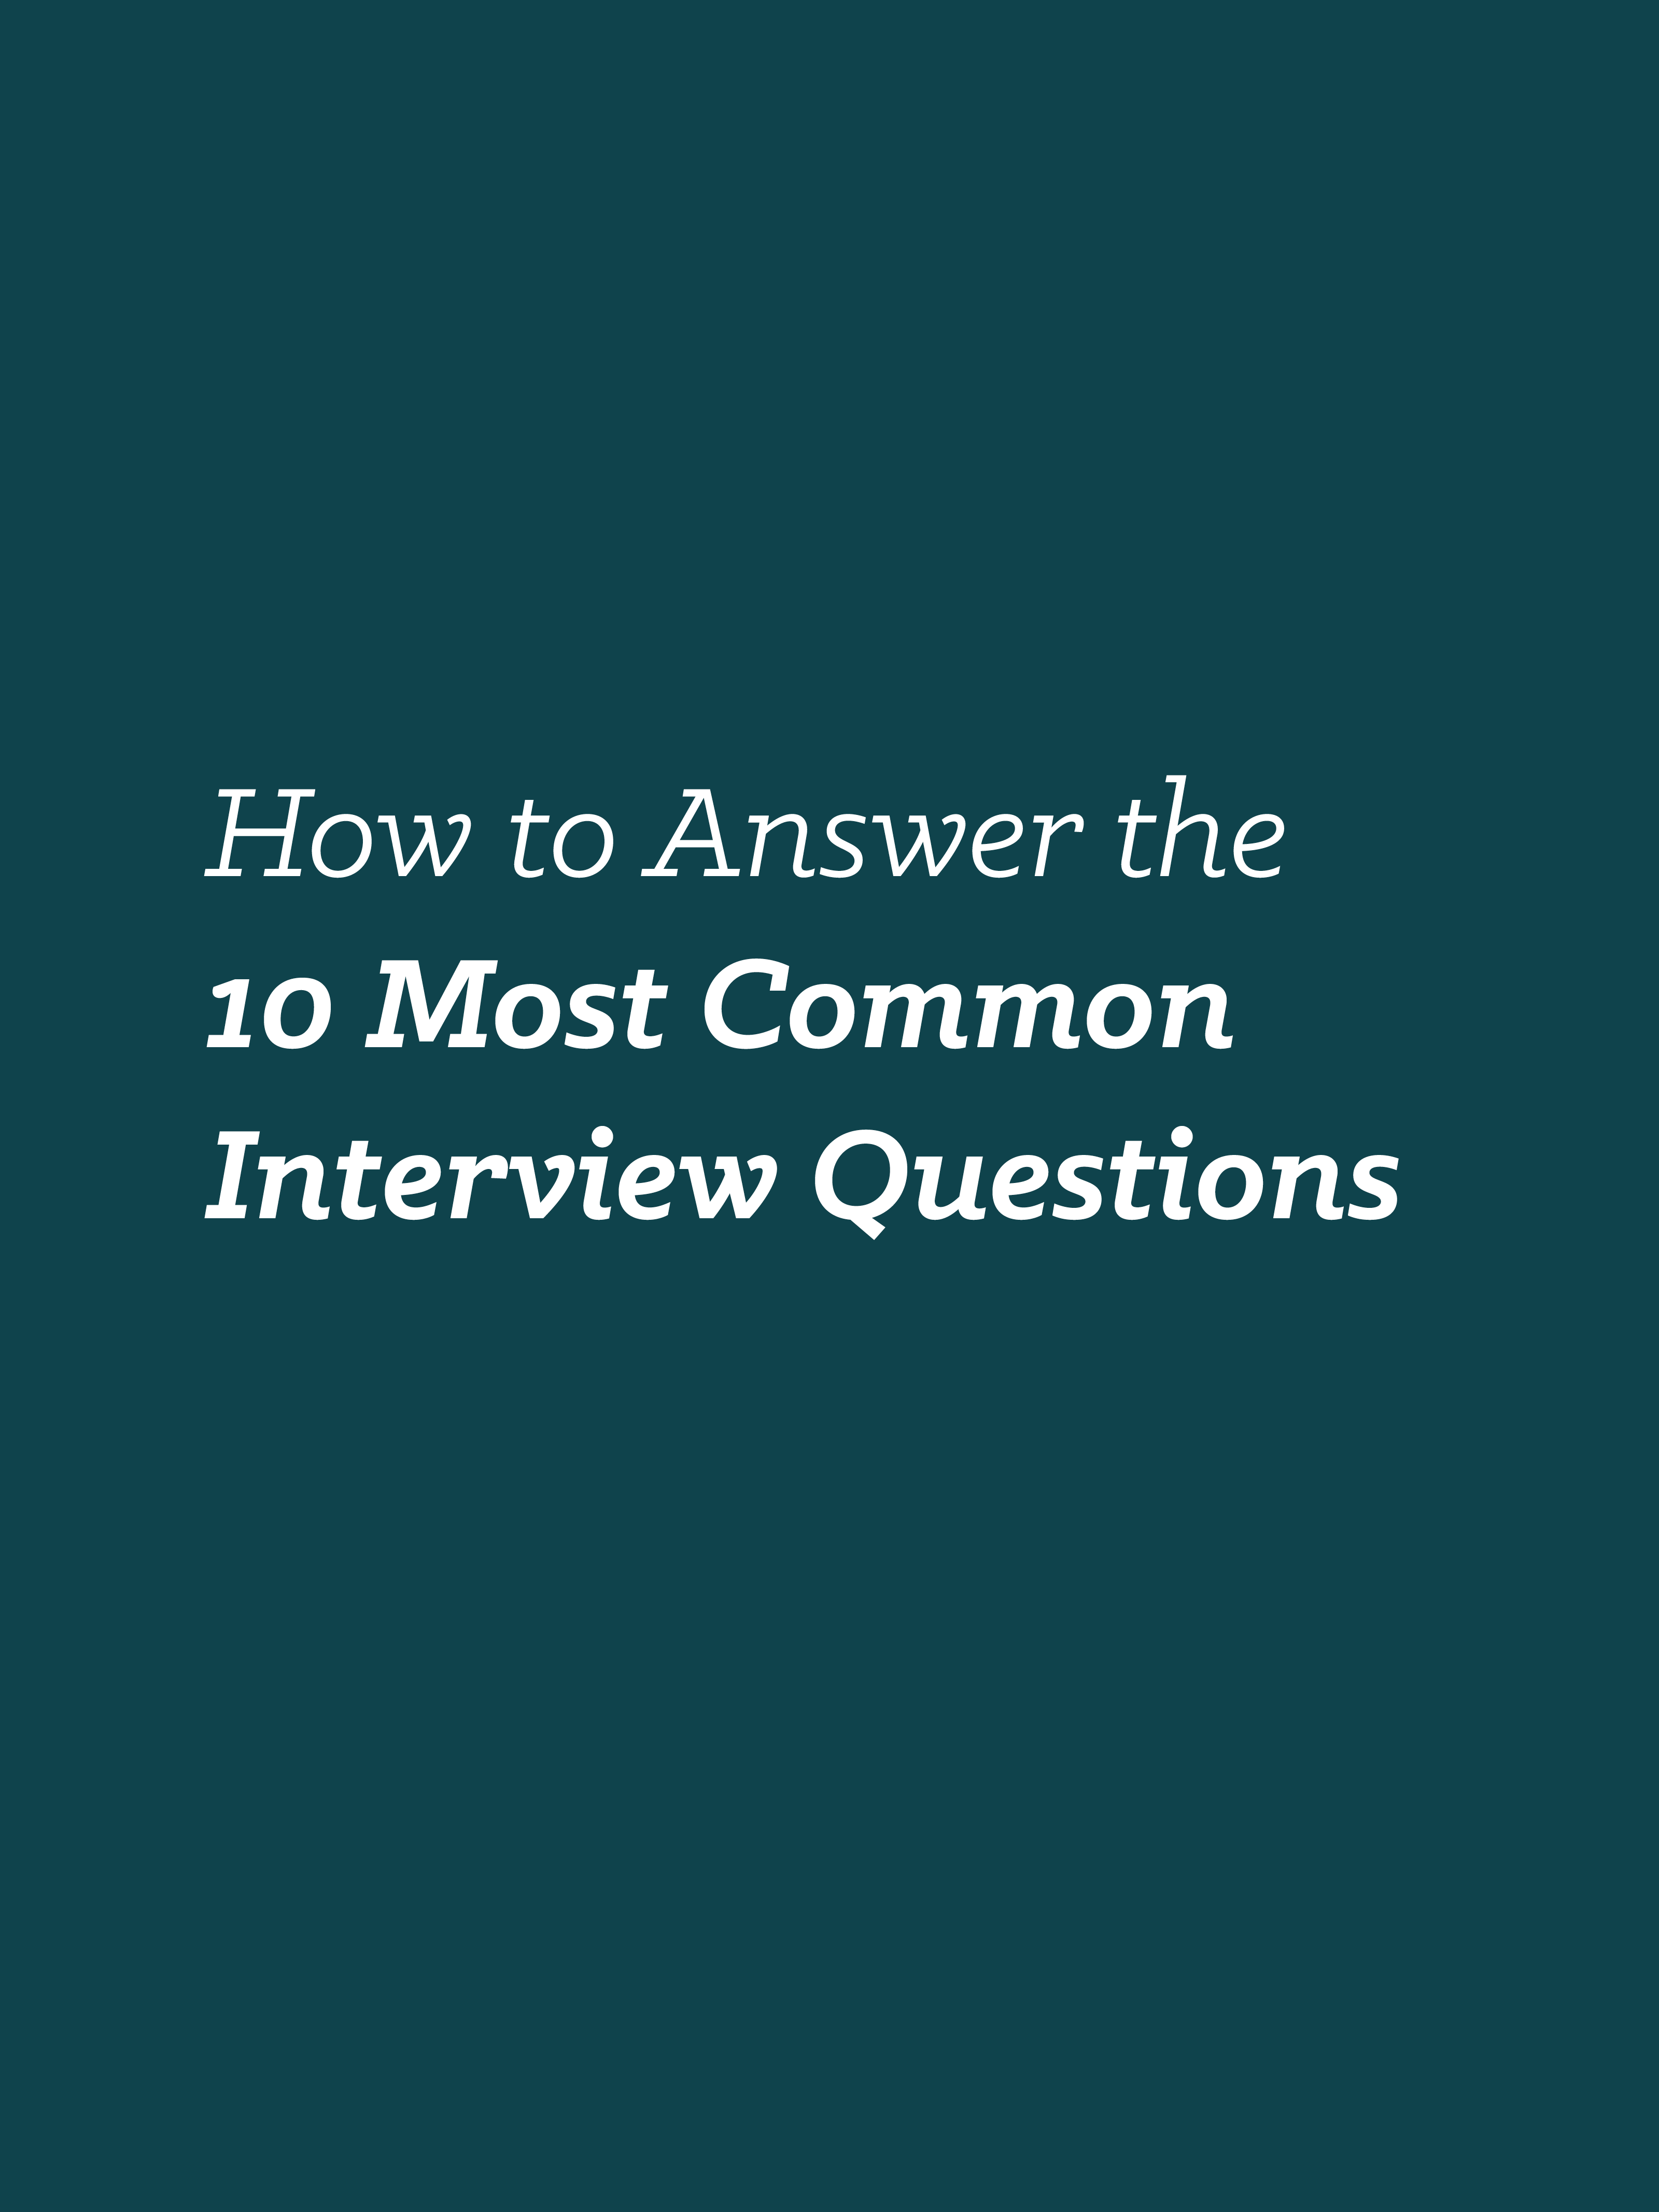 Interview_Guide_For_Job_Seekers4.png